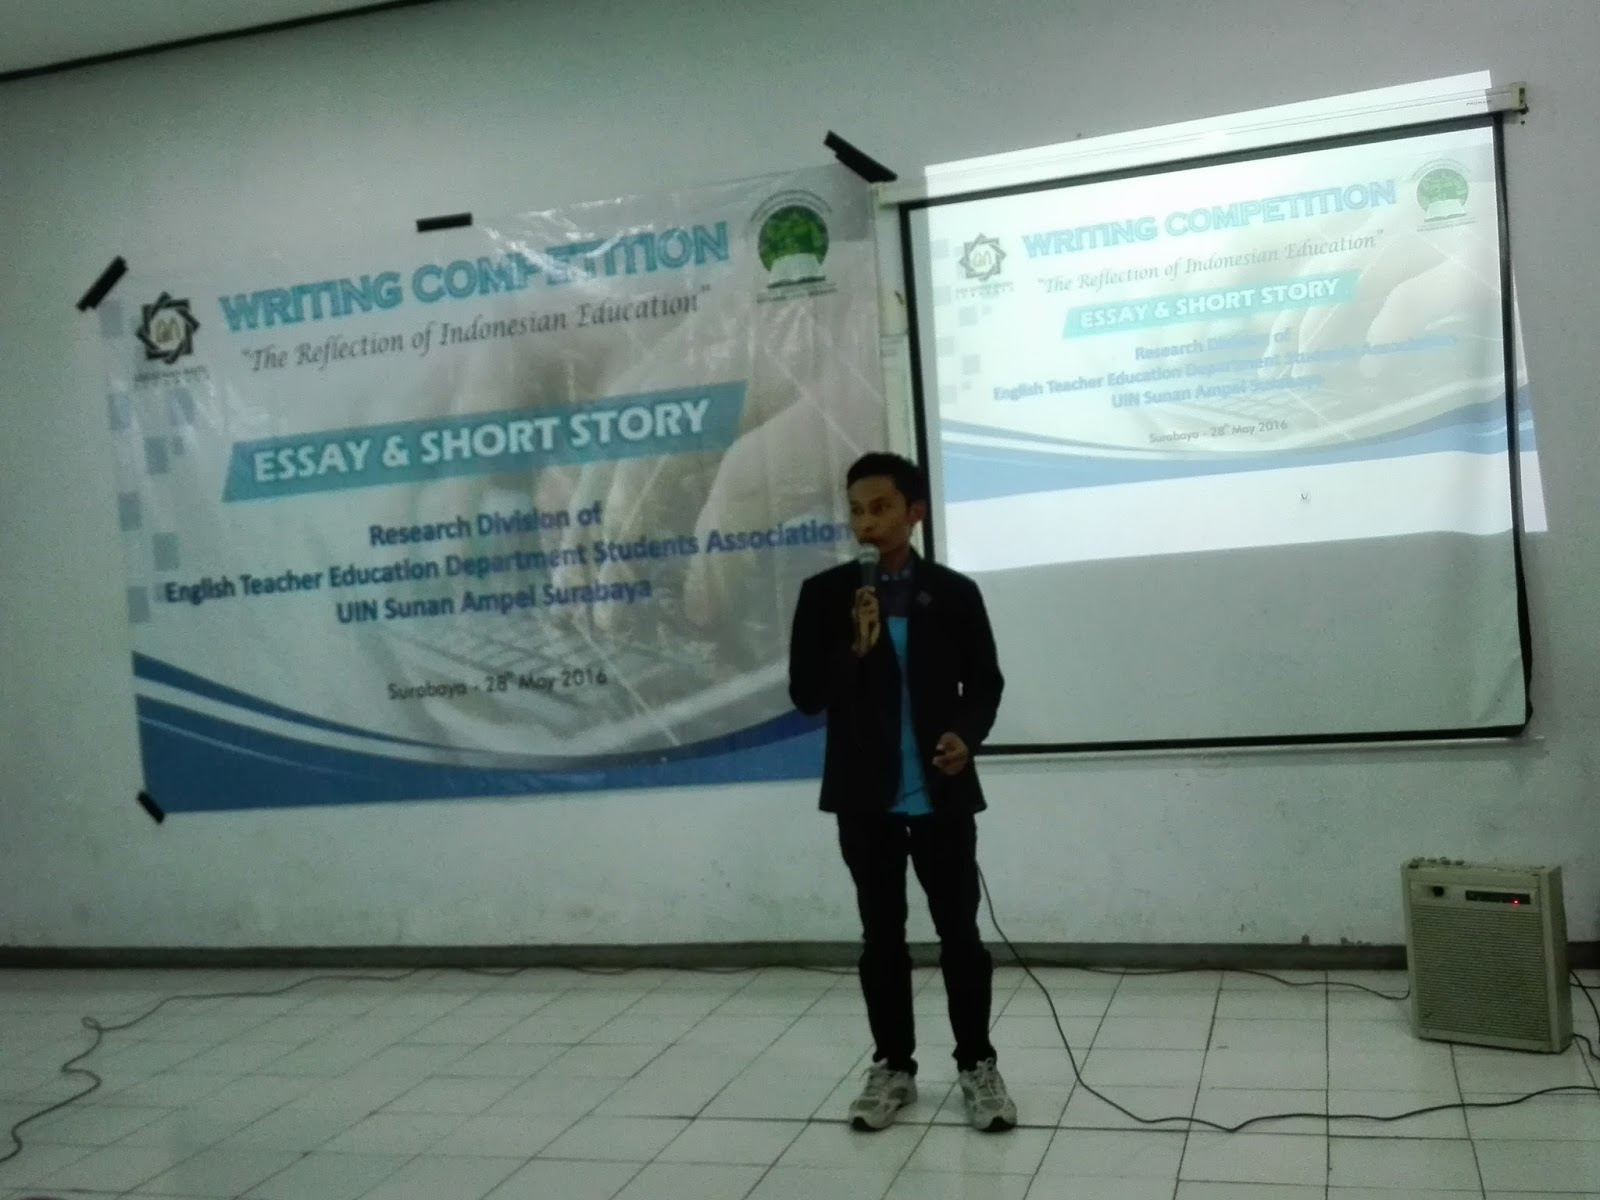 english essay short story essay about a short story examples the  writing competition essay short story himaprodi pbi uinsa here the  documentation of the event